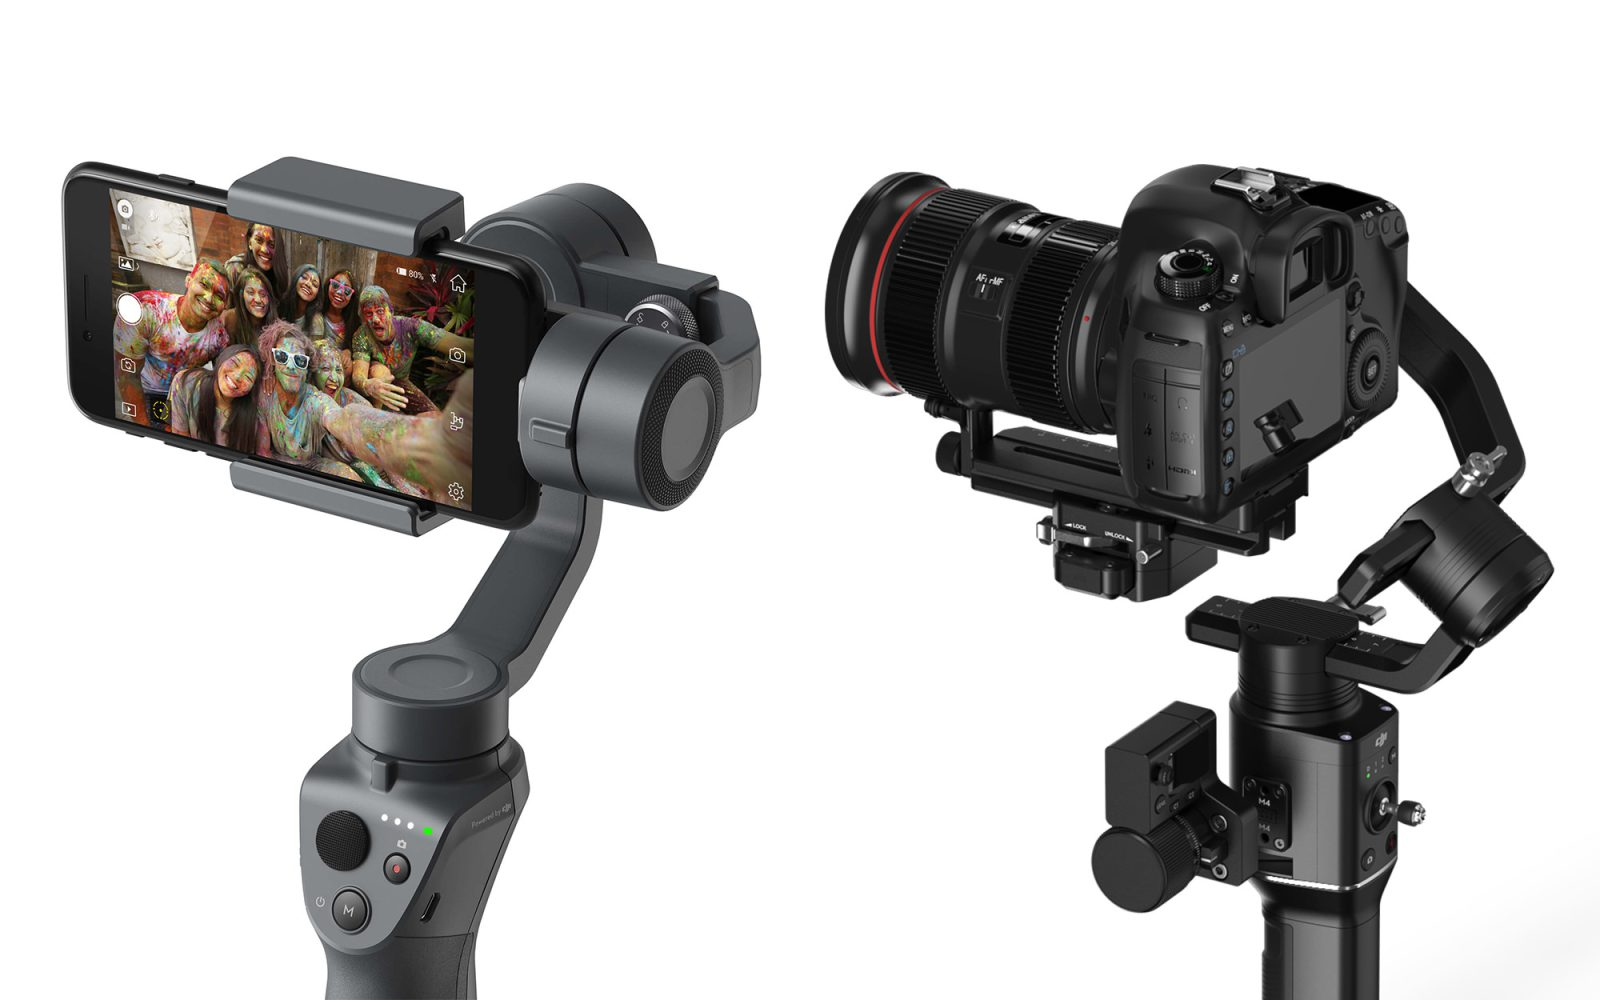 Read New DJI Handheld Camera Stabilisers Unveiled At CES 2018